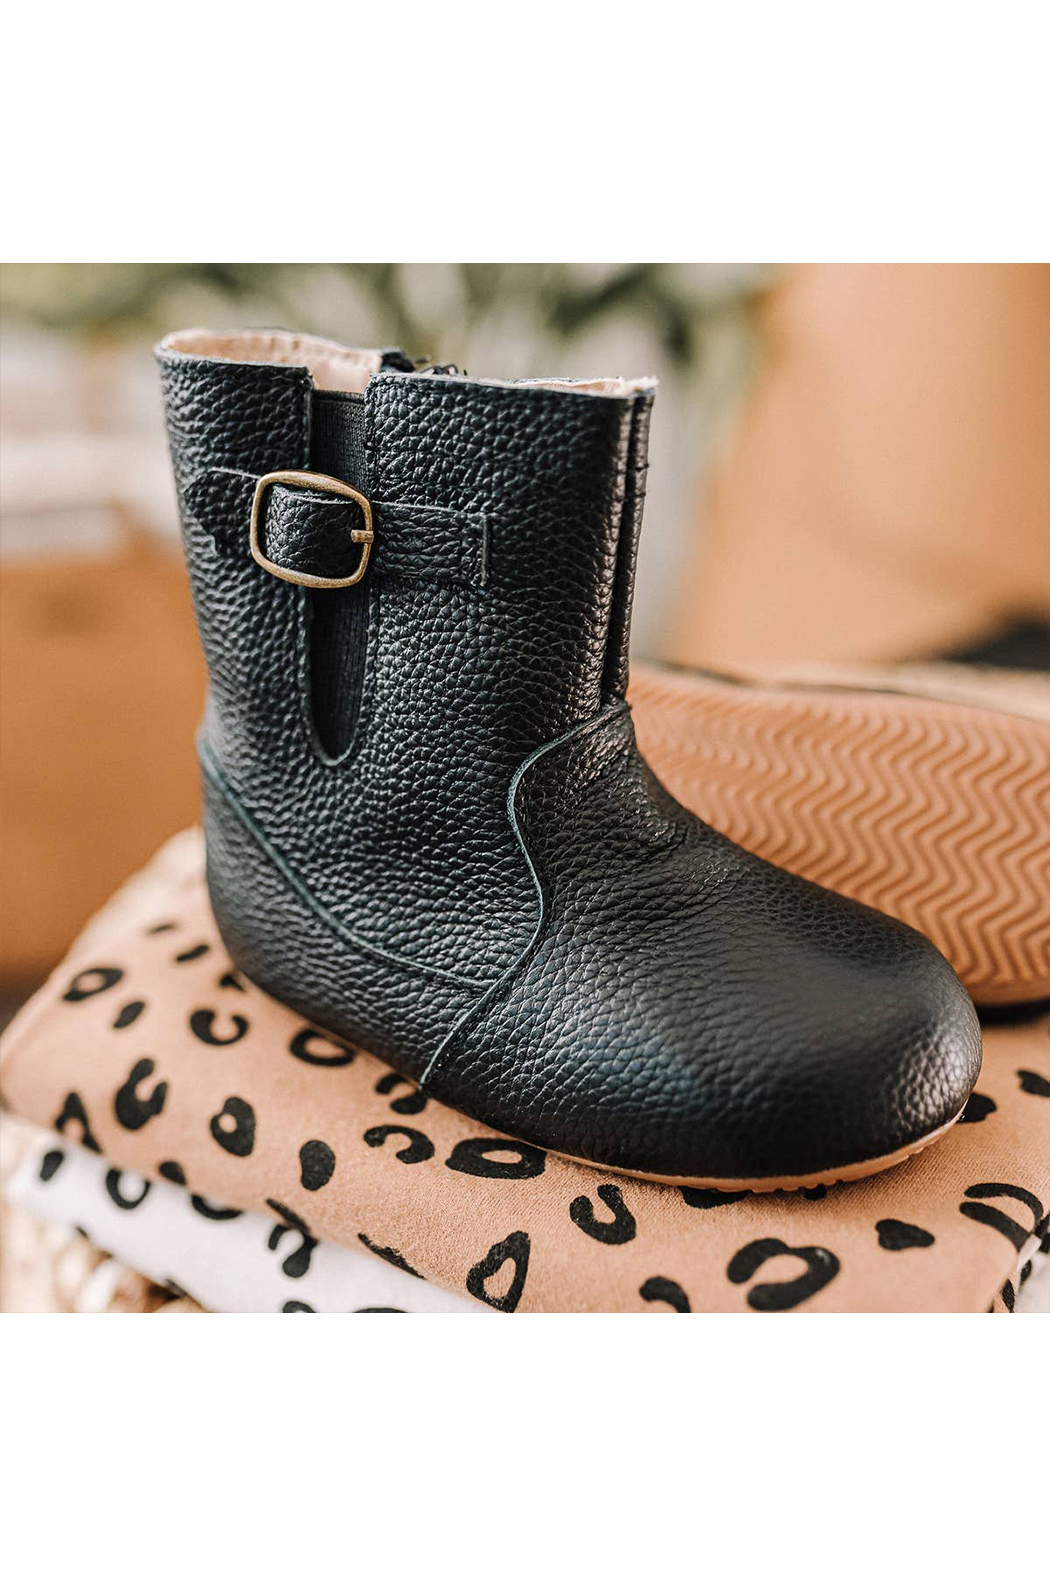 Little Love Bug Black Riding Moccasin Boot with Waterproof Soft Sole - Main Image